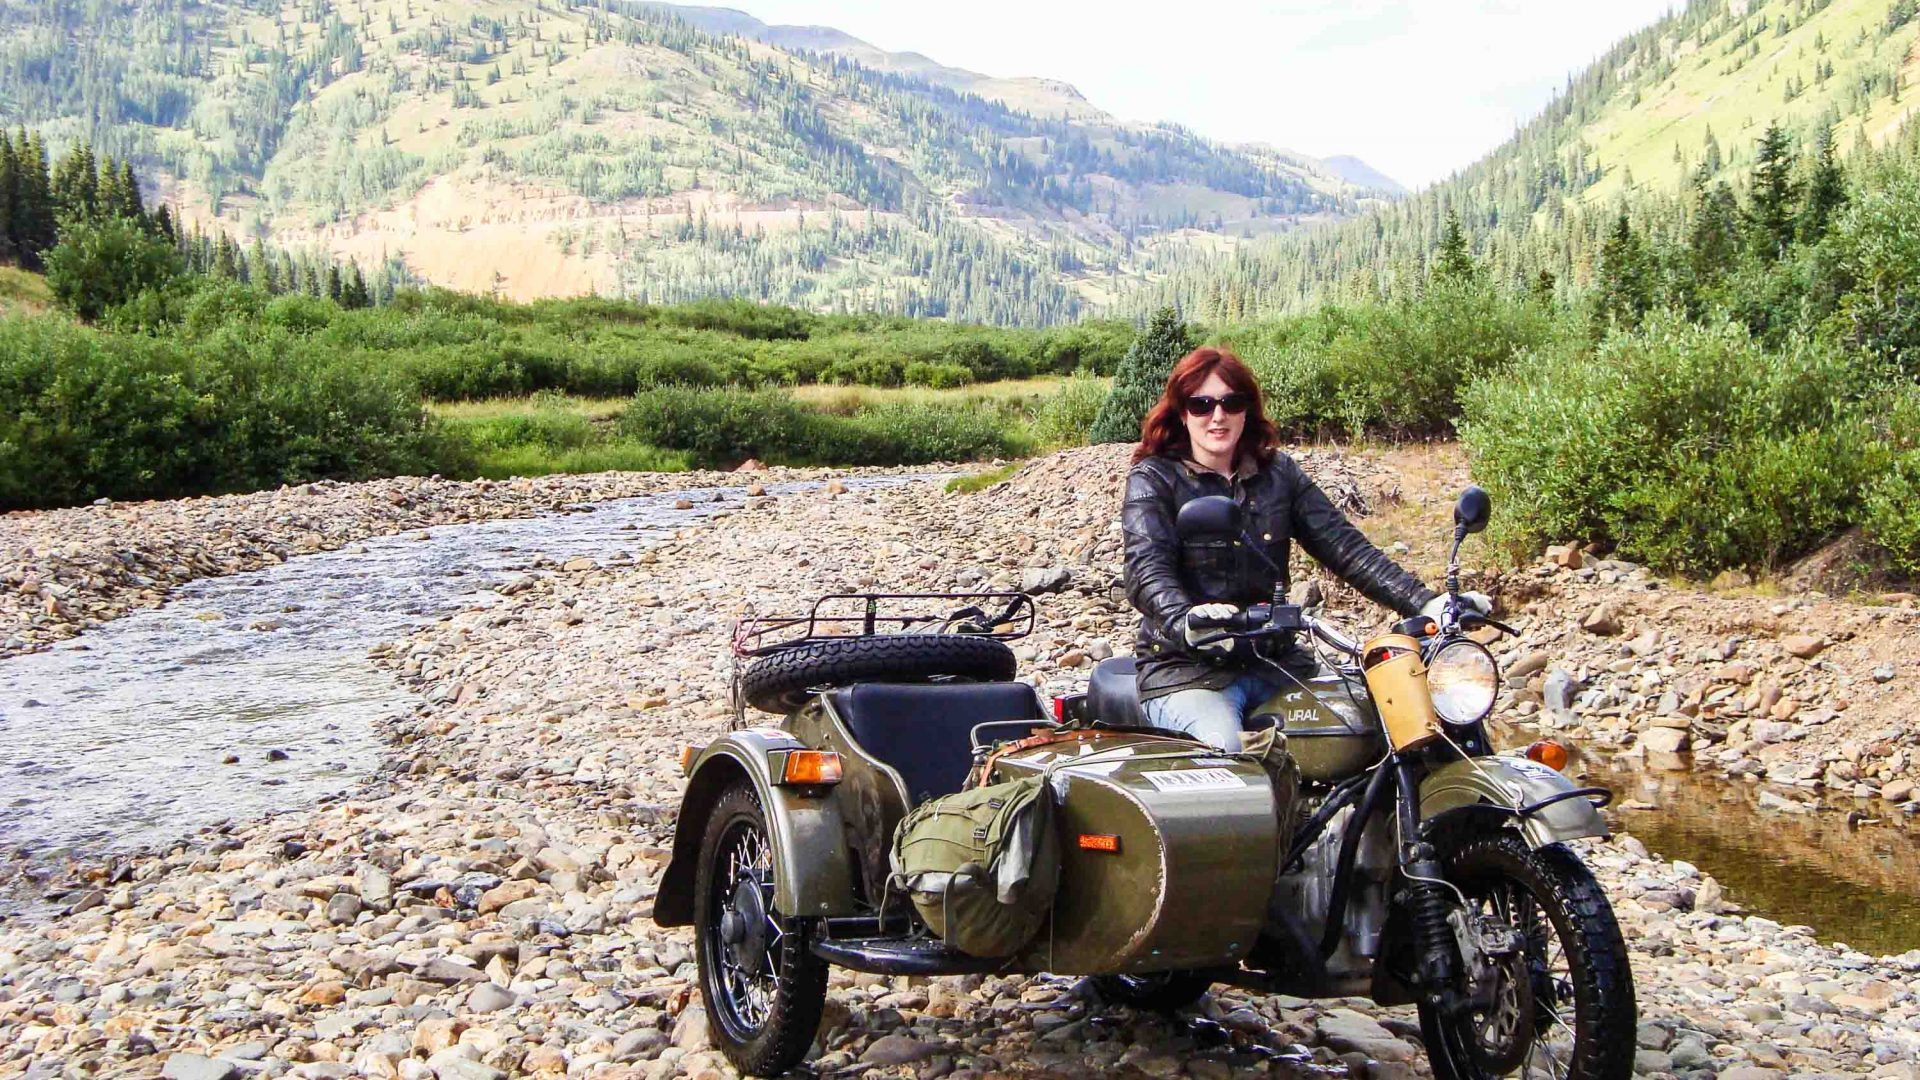 Lois with her bike and sidecar at the Ural Colorado River in the USA.